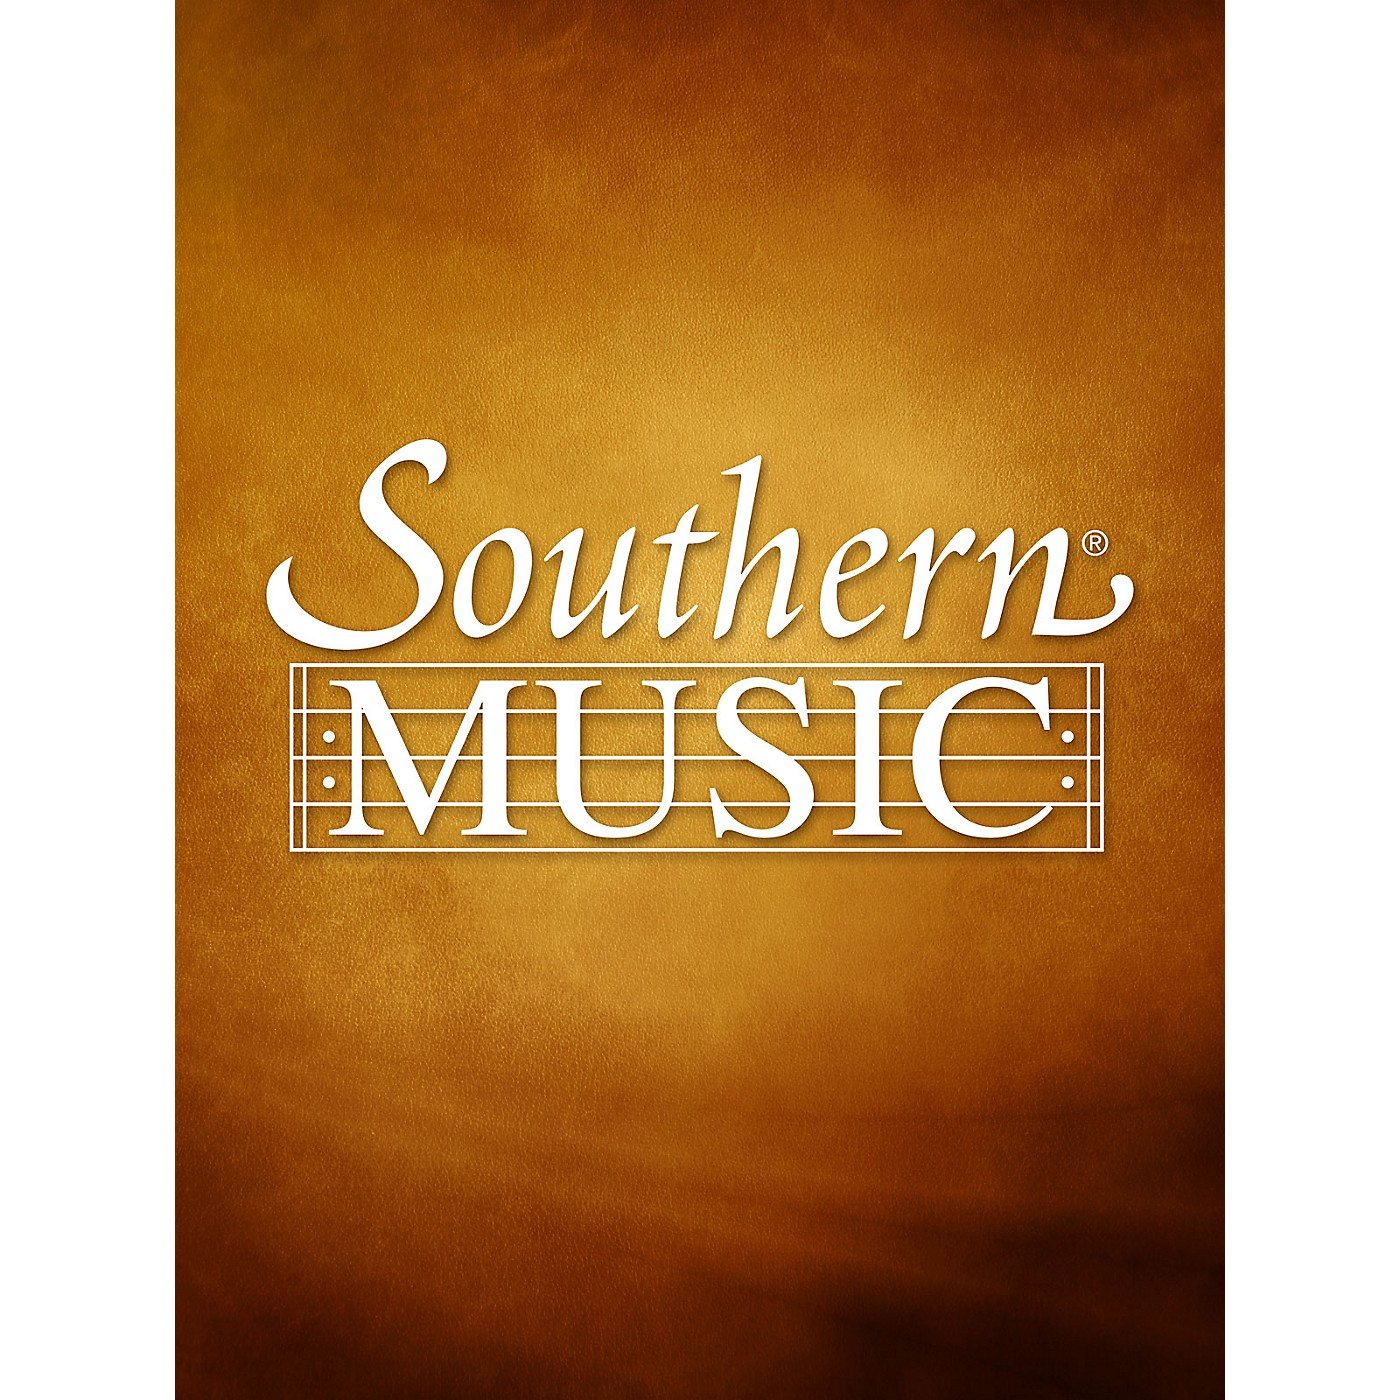 Southern Eastern Intermezzo - Youthful Suite, Mvt. 4 Concert Band Level 4 Arranged by R. Mark Rogers thumbnail